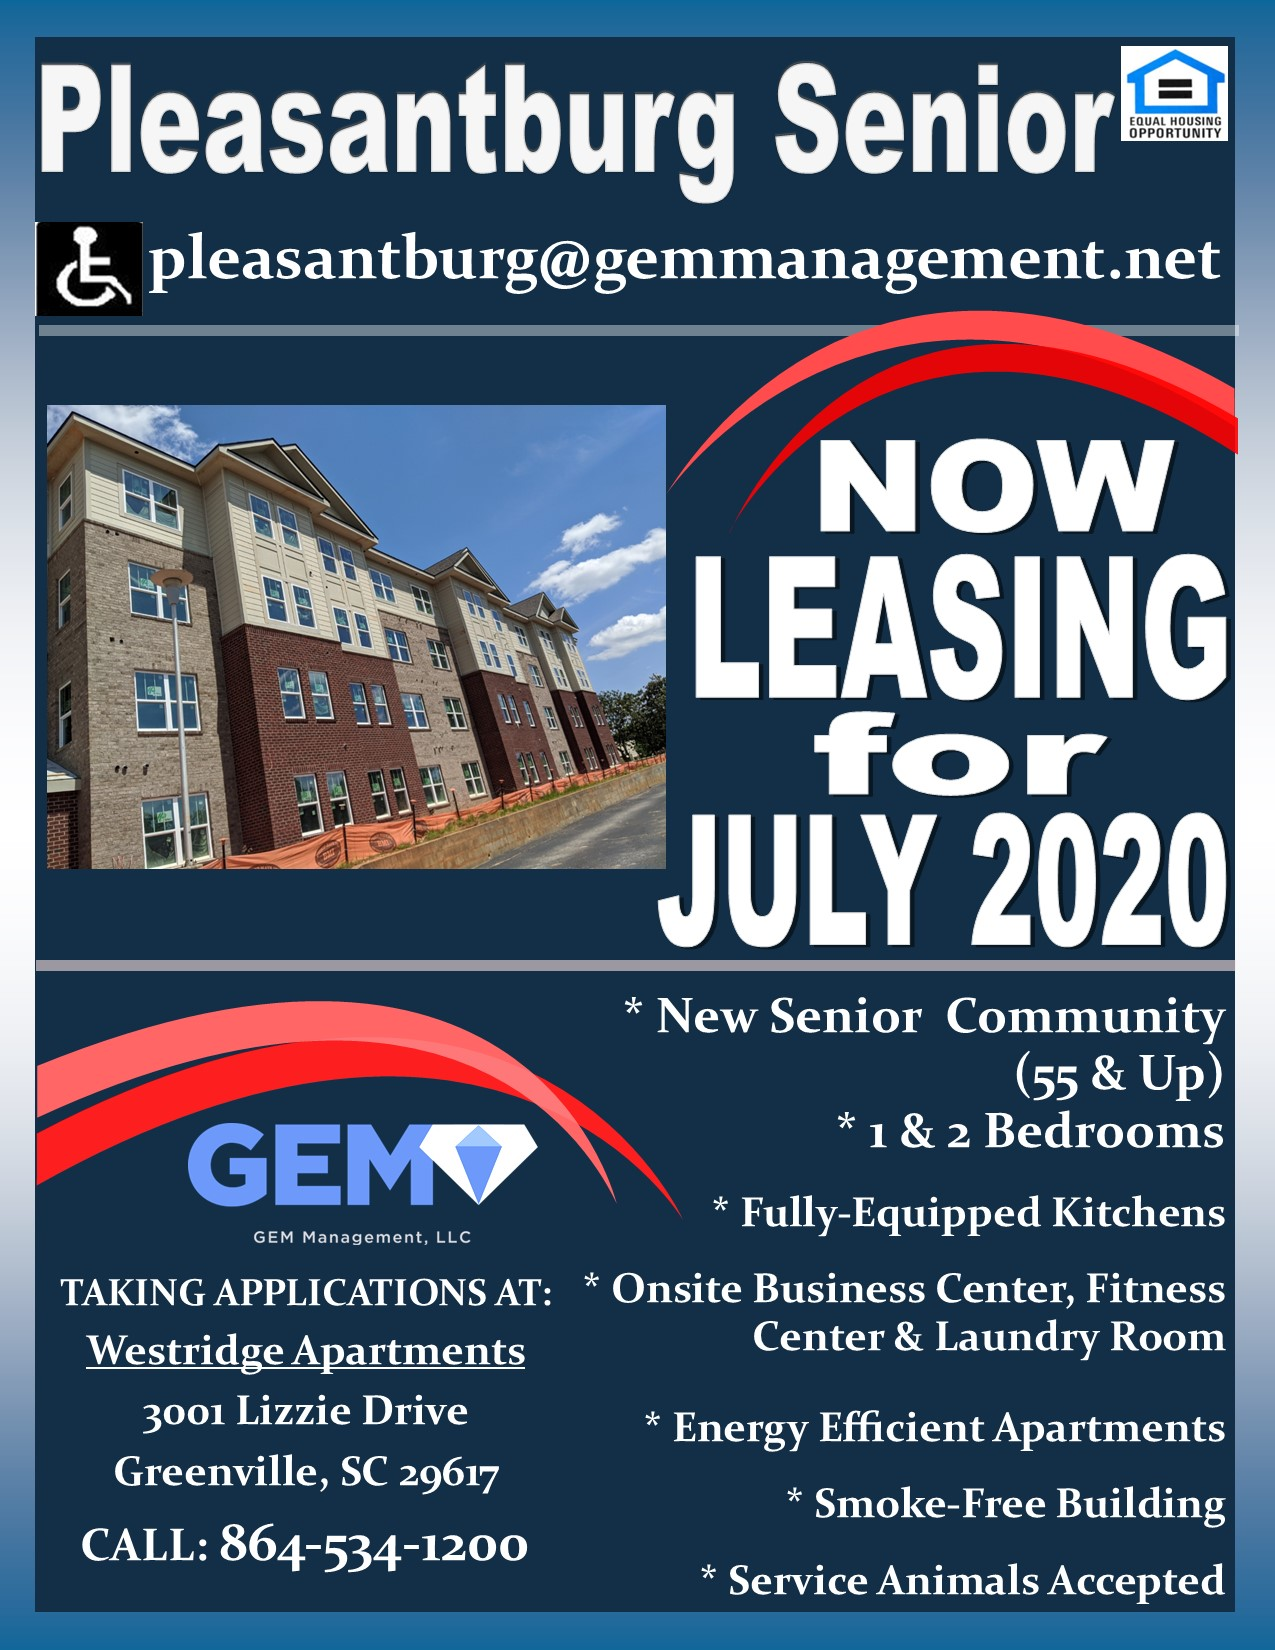 Image of Pleasantburg Senior Apartments in Greenville, South Carolina